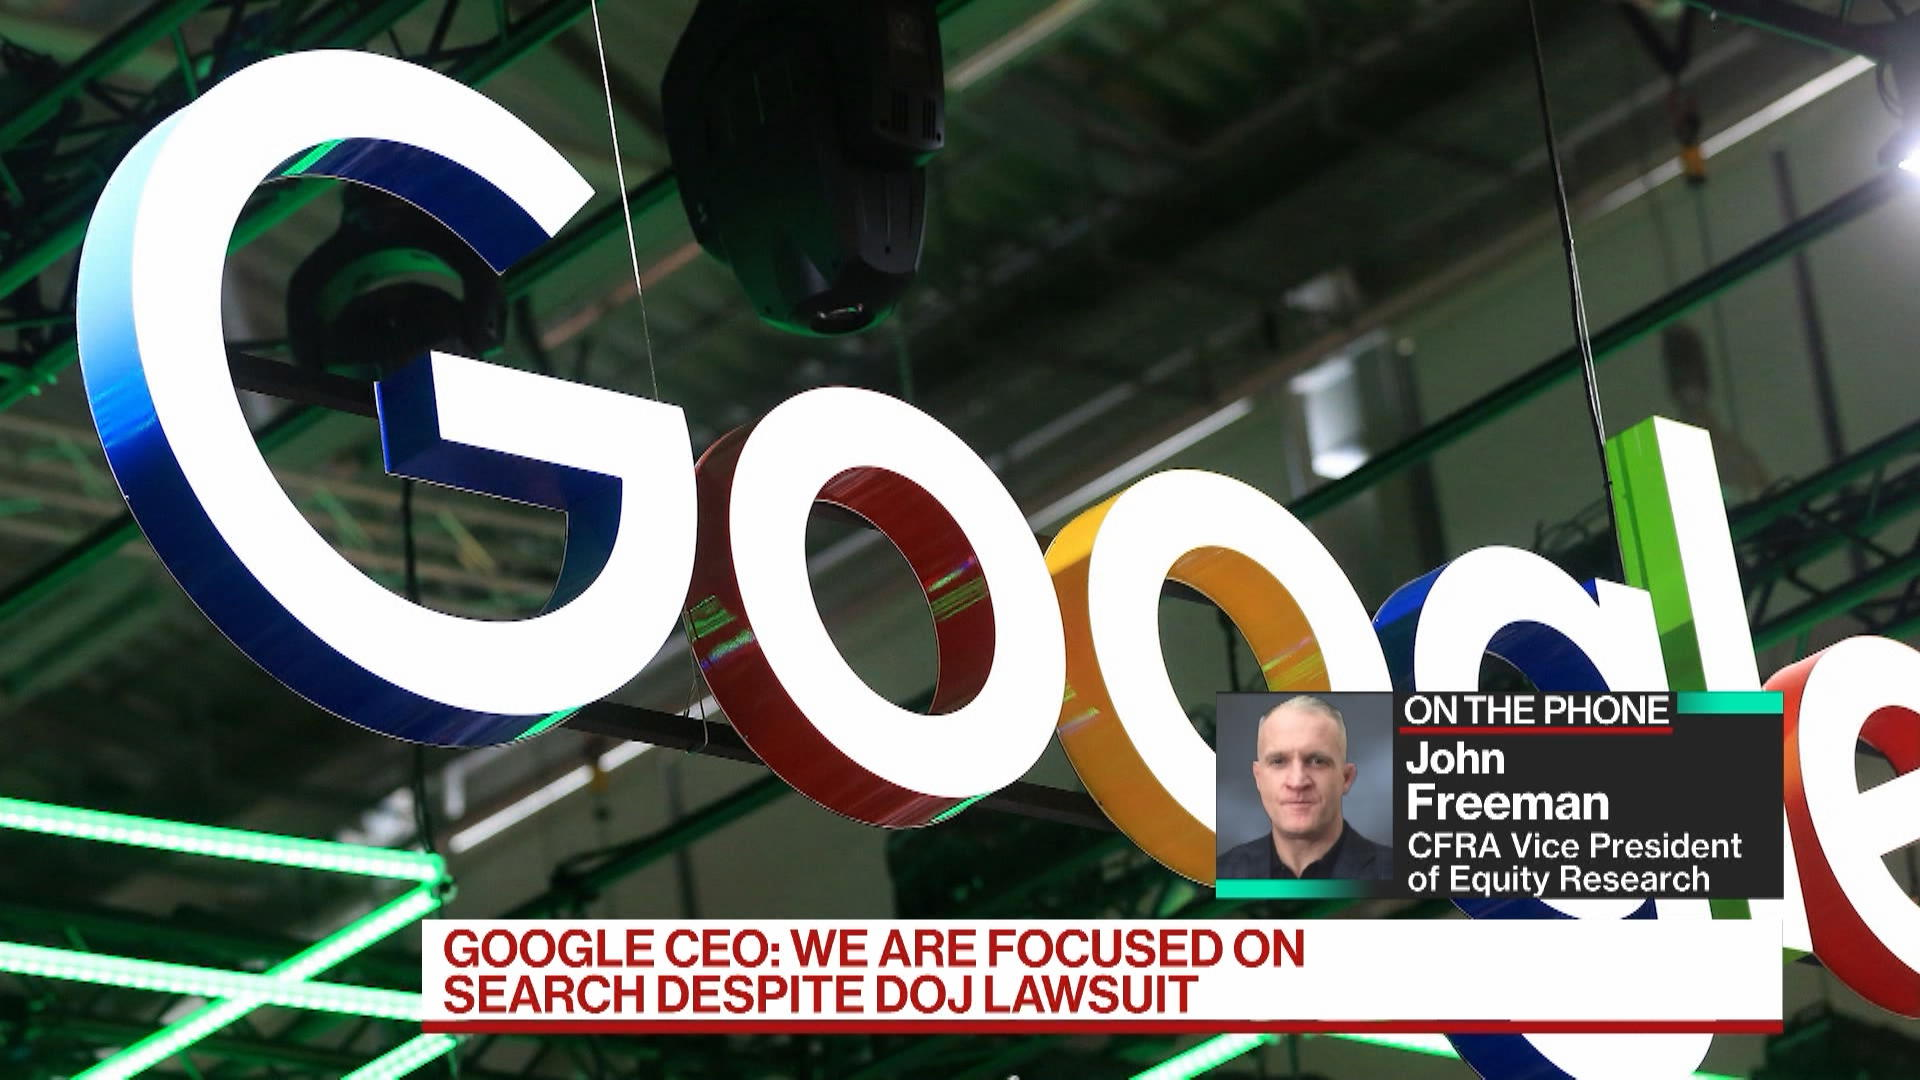 Google Search, YouTube Showed Strong Growth: CFRA's Freeman